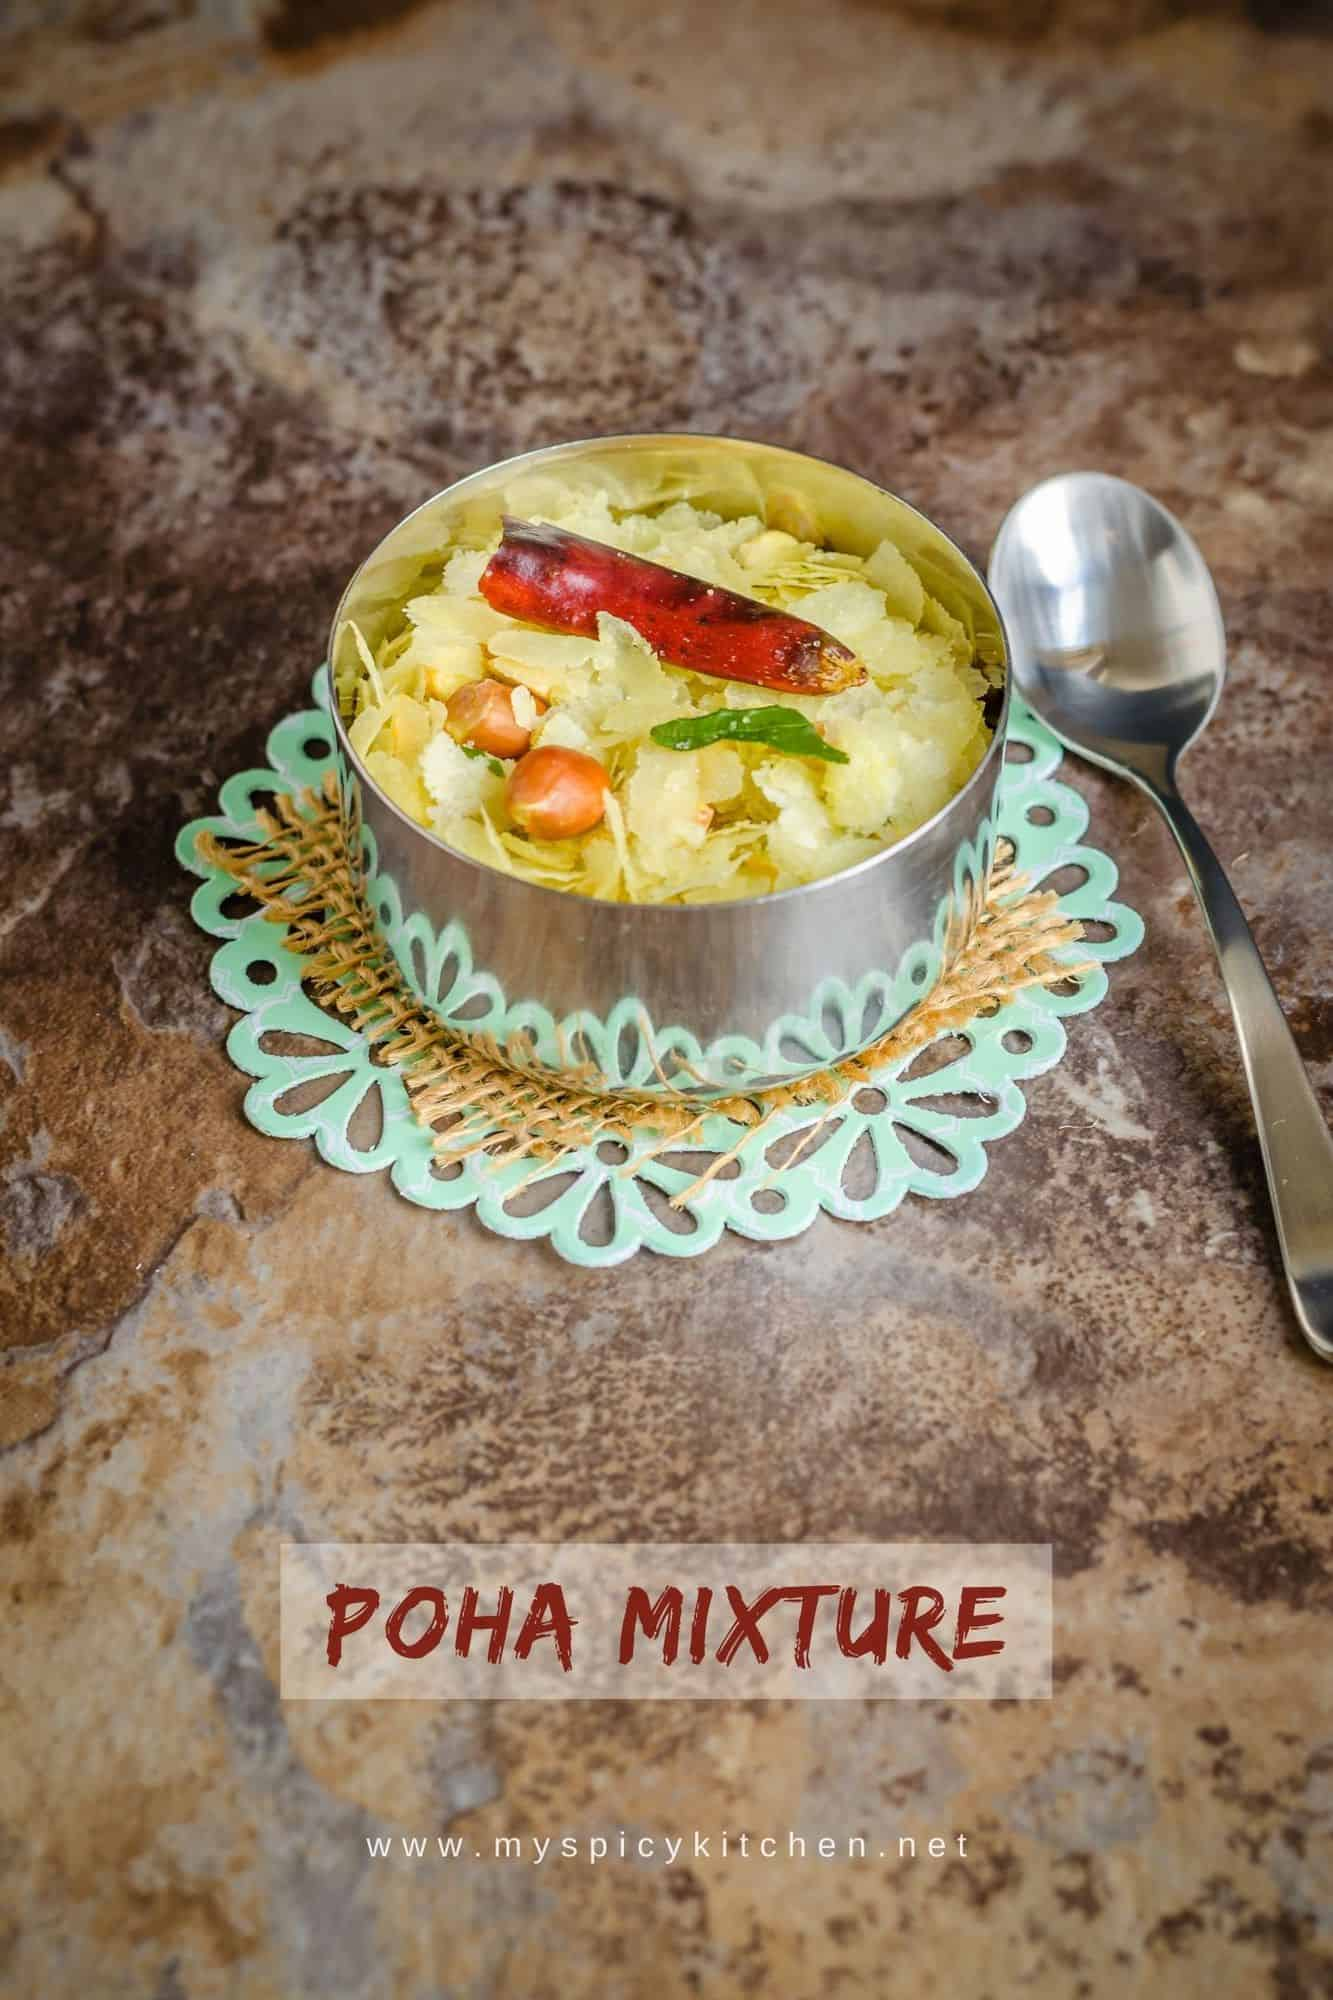 A bowl poha mixture is a savory Indian snack with flattened rice and peanuts.